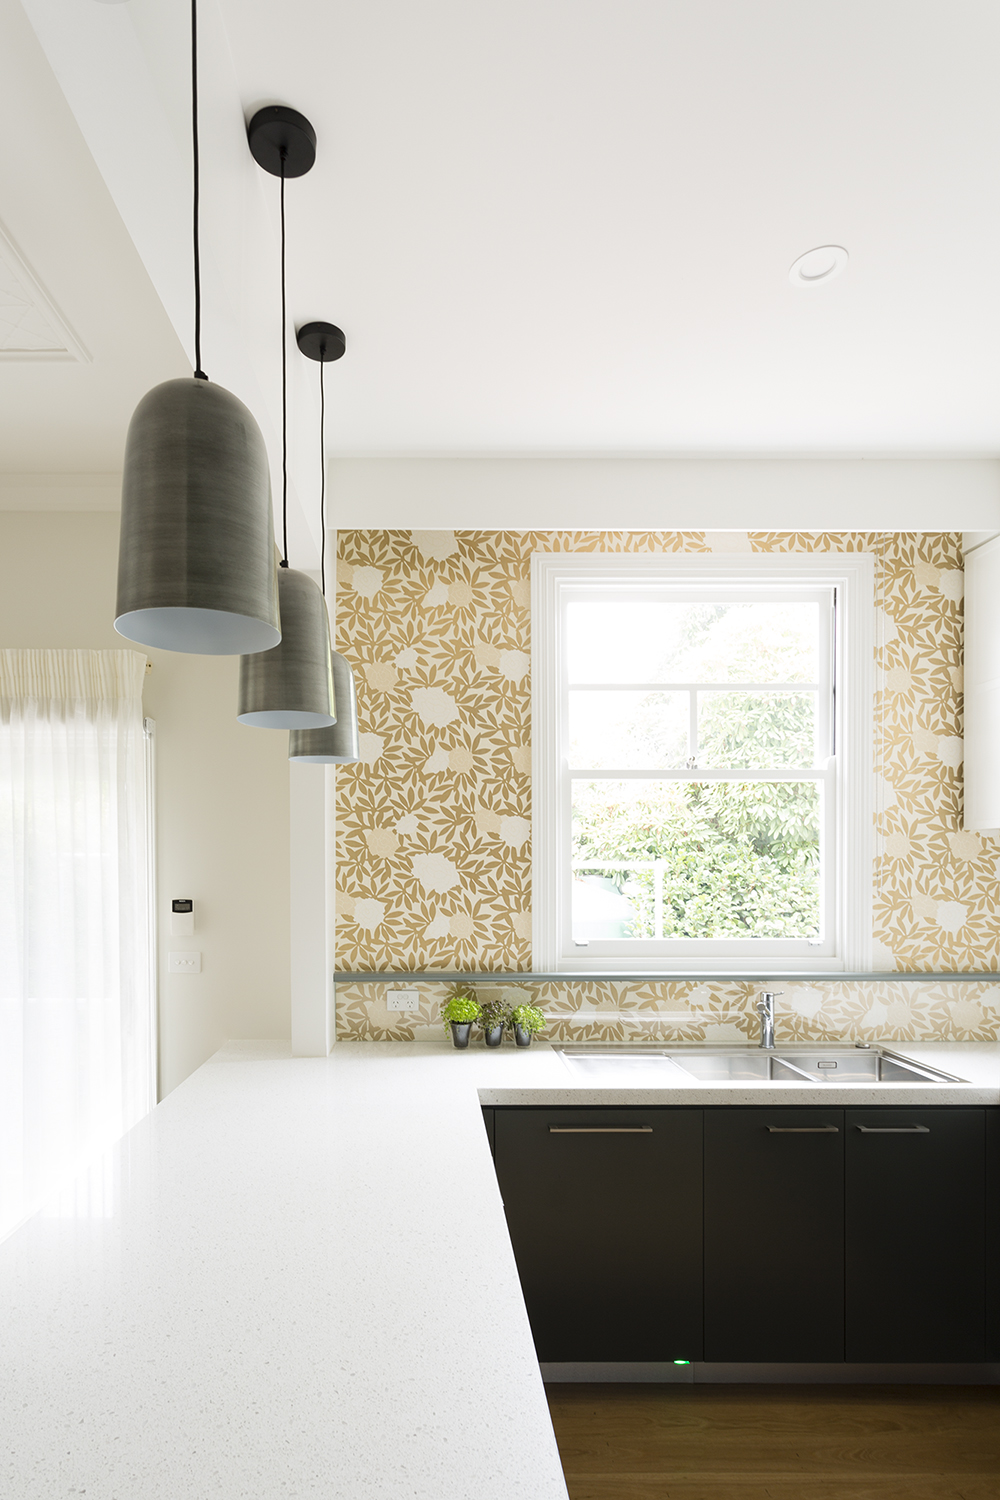 Wallpaper kitchen renovation interior designer melbourne